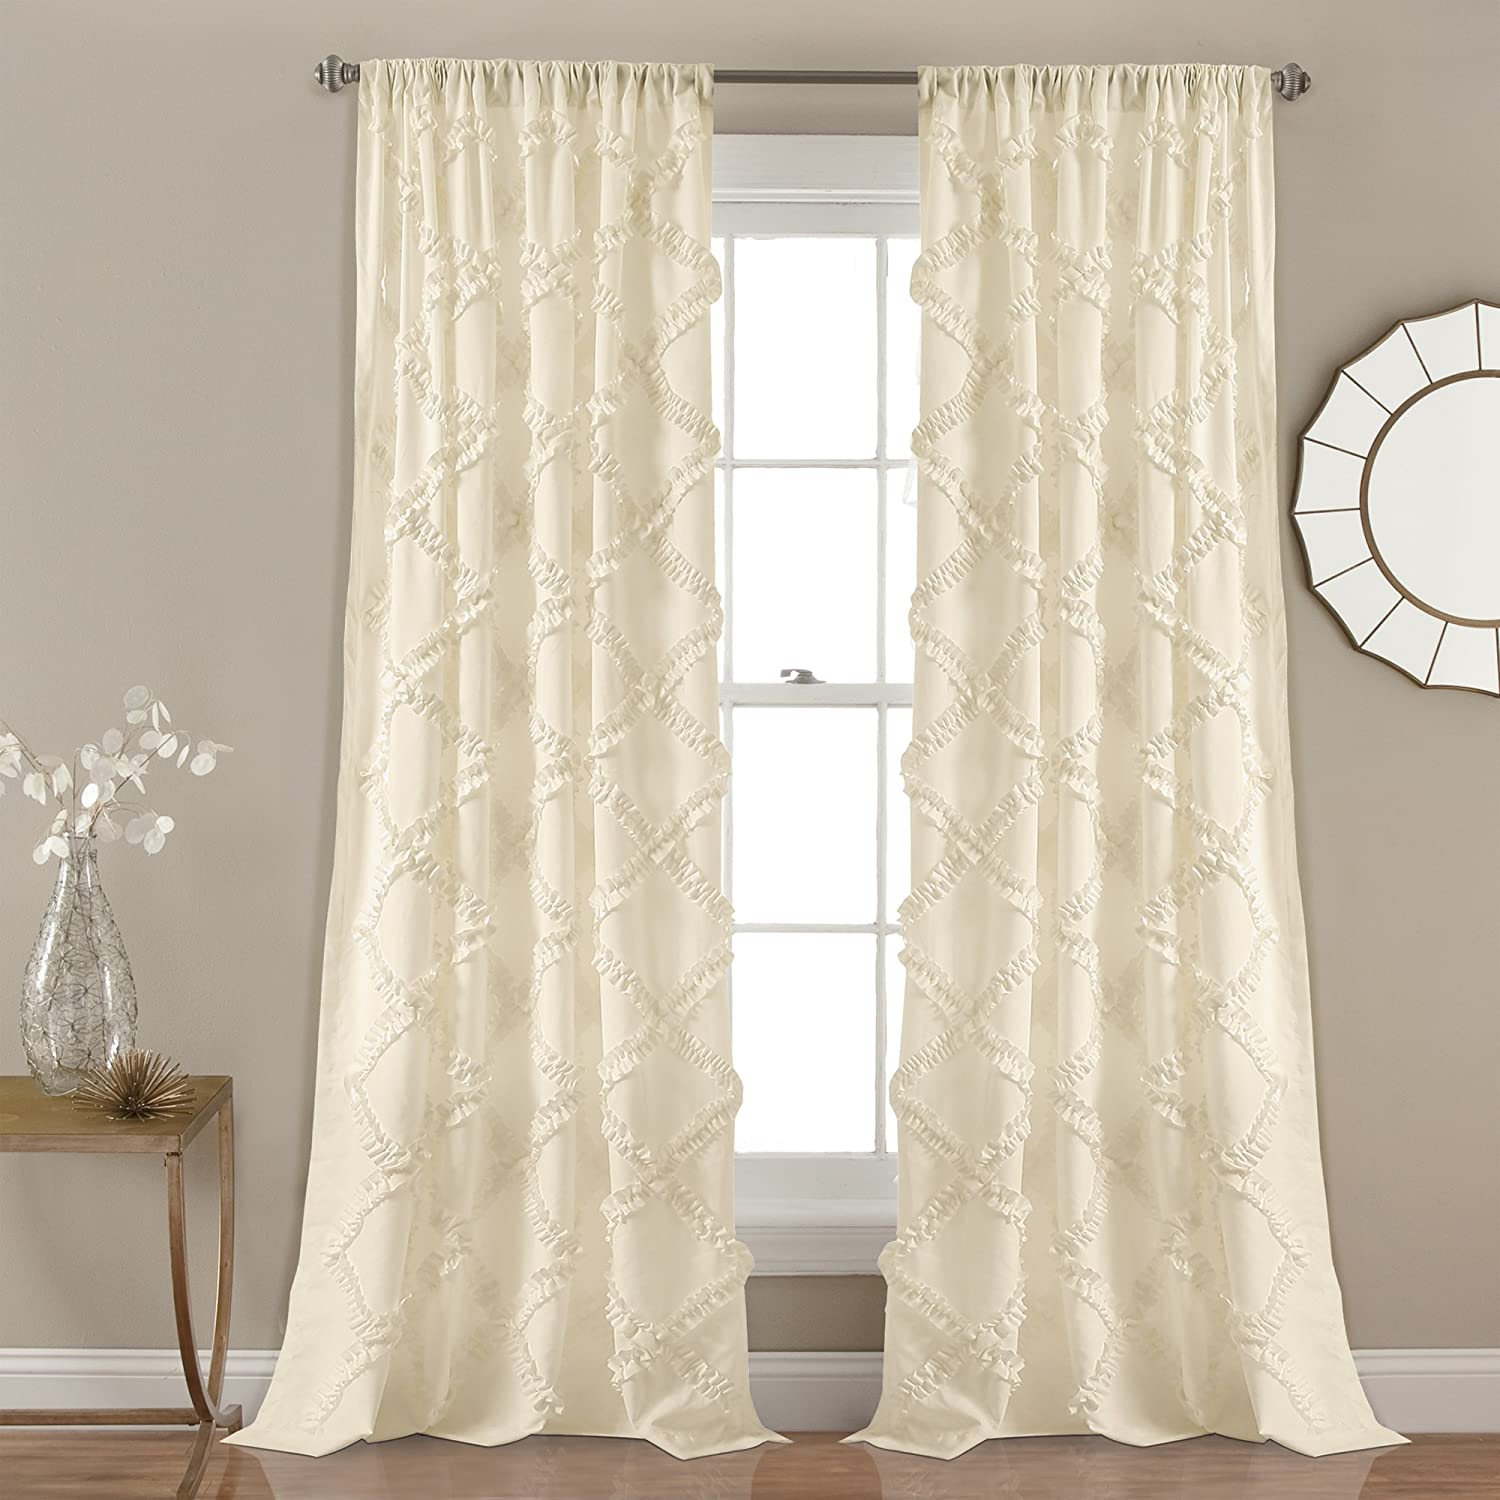 "Lush Decor, Ivory Ruffle Diamond Curtains Textured Window Panel Set for Living, Dining Room, Bedroom (Pair), 84"" x 54, 84"" x 54"", 2 Count"